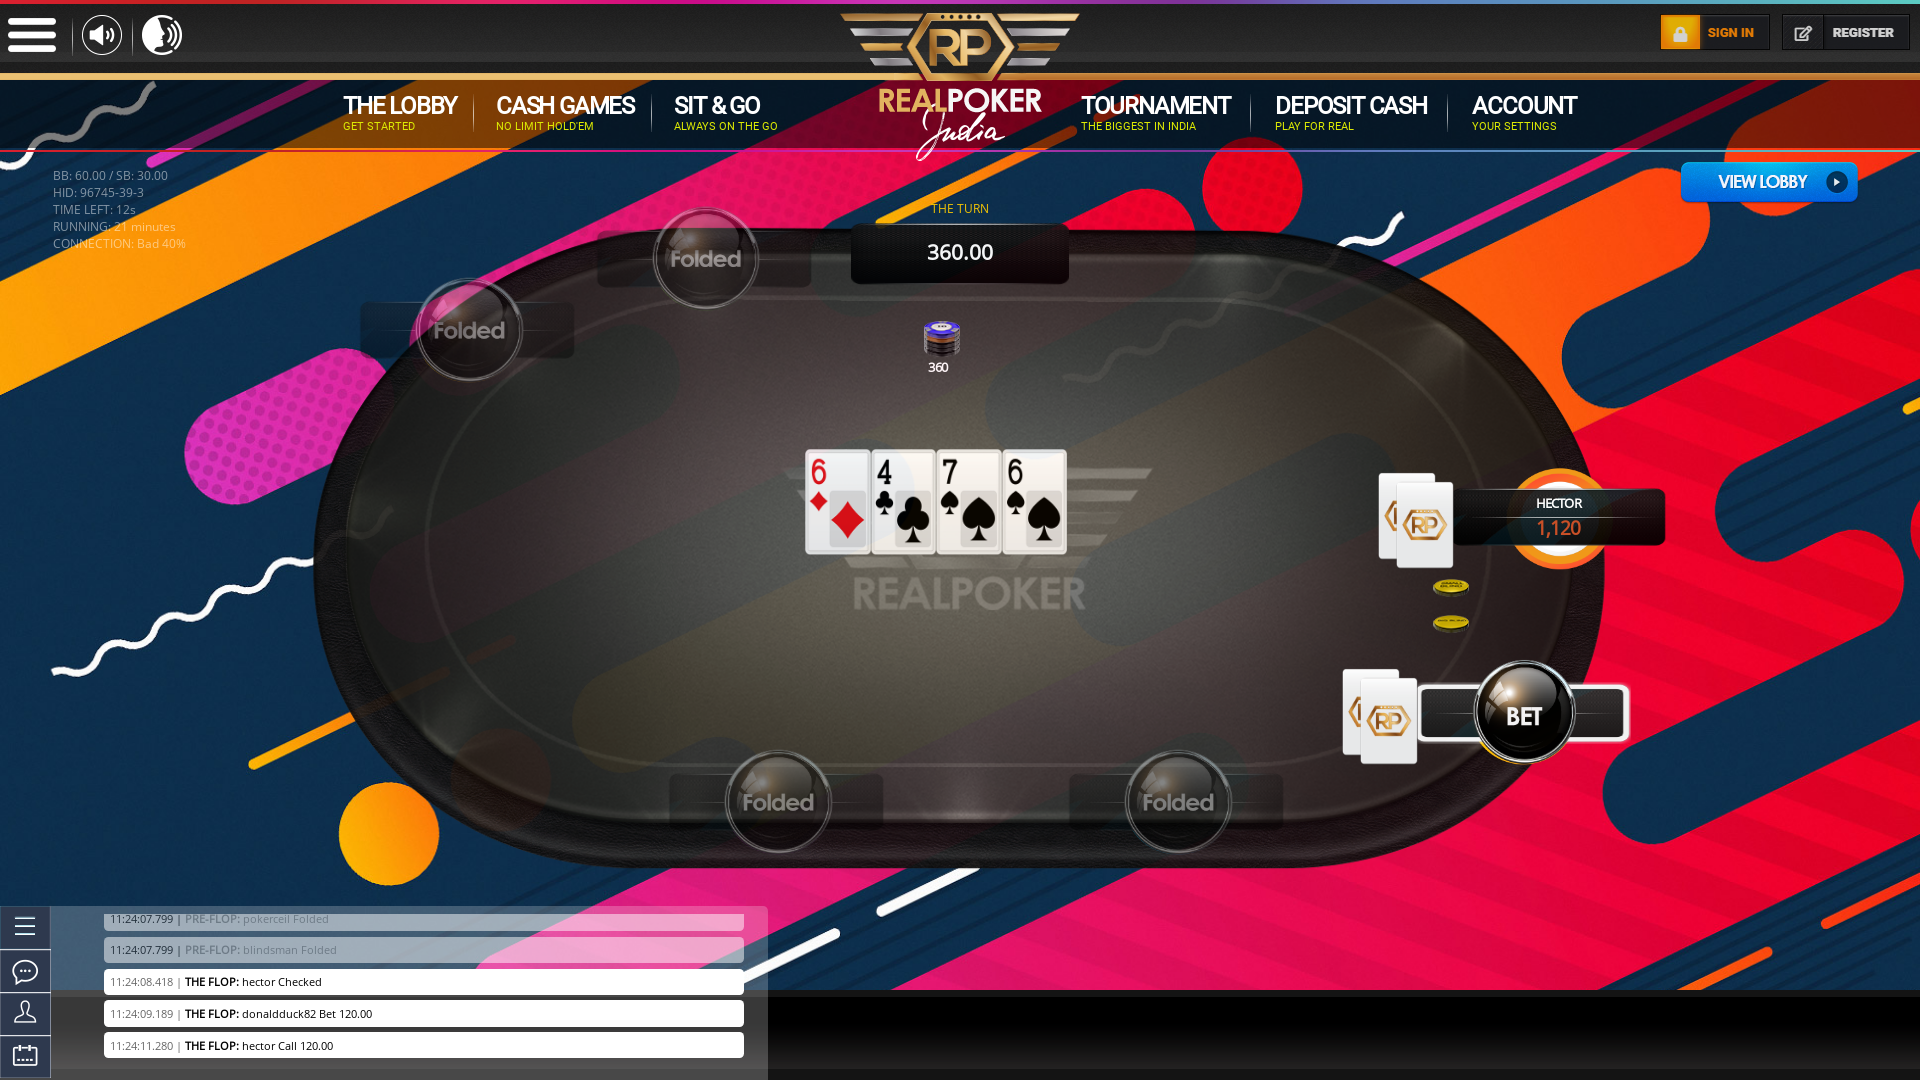 Real poker 10 player table in the 2 match